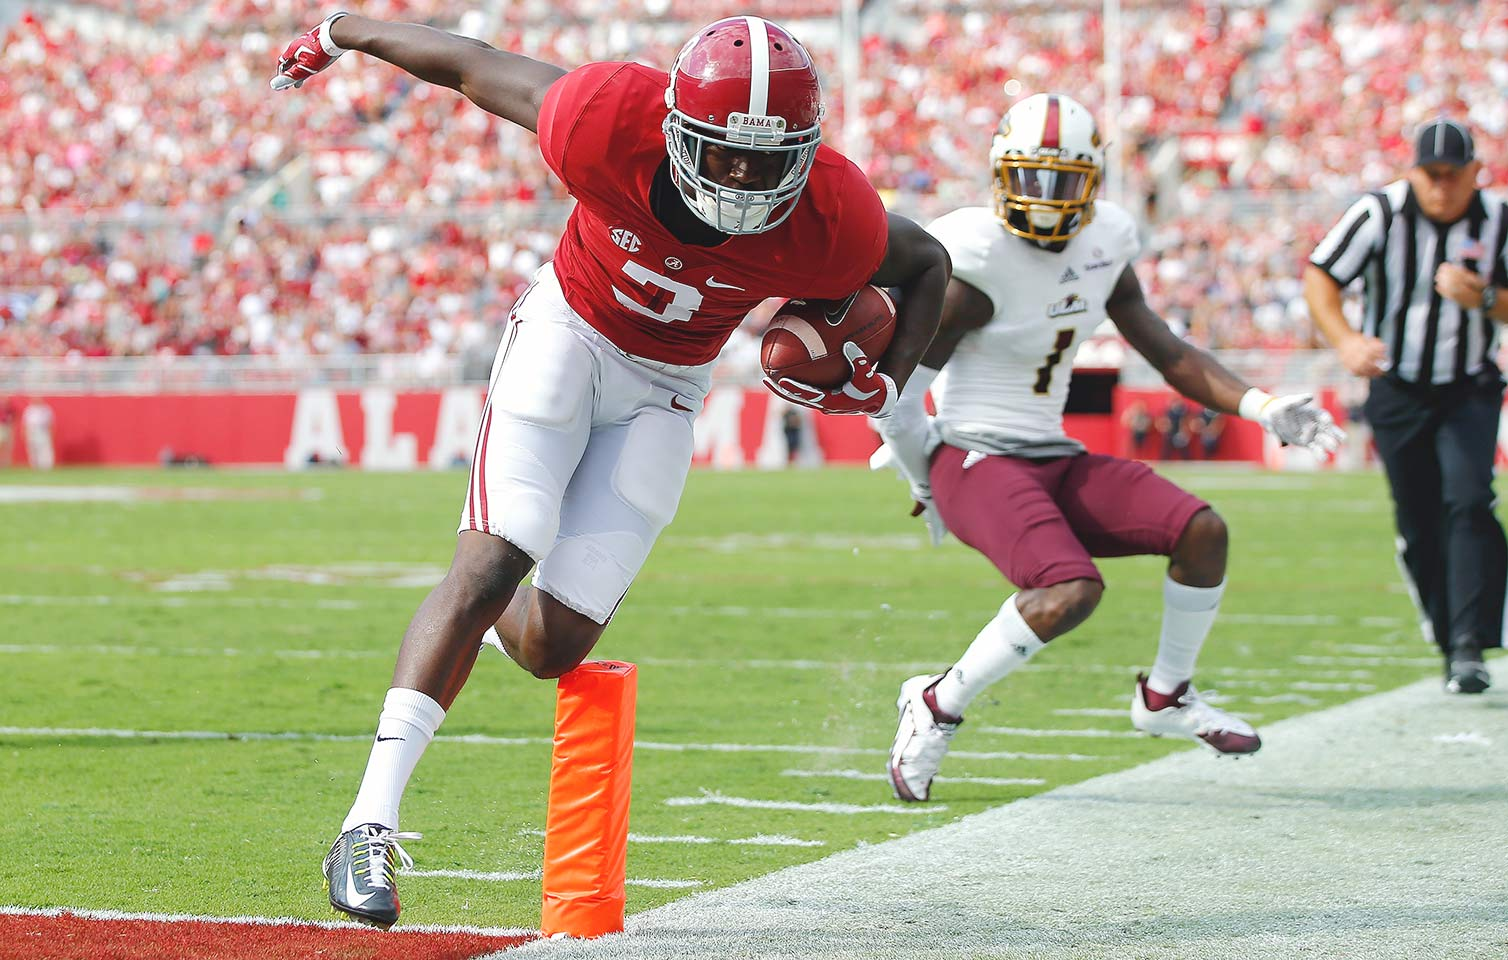 Alabama 34, Louisiana Monroe 0: Despite a relatively sluggish offensive performance (just 166 yards passing and 3.9 yards per carry), the Crimson Tide easily put away the Warhawks to rebound from their loss to Ole Miss.